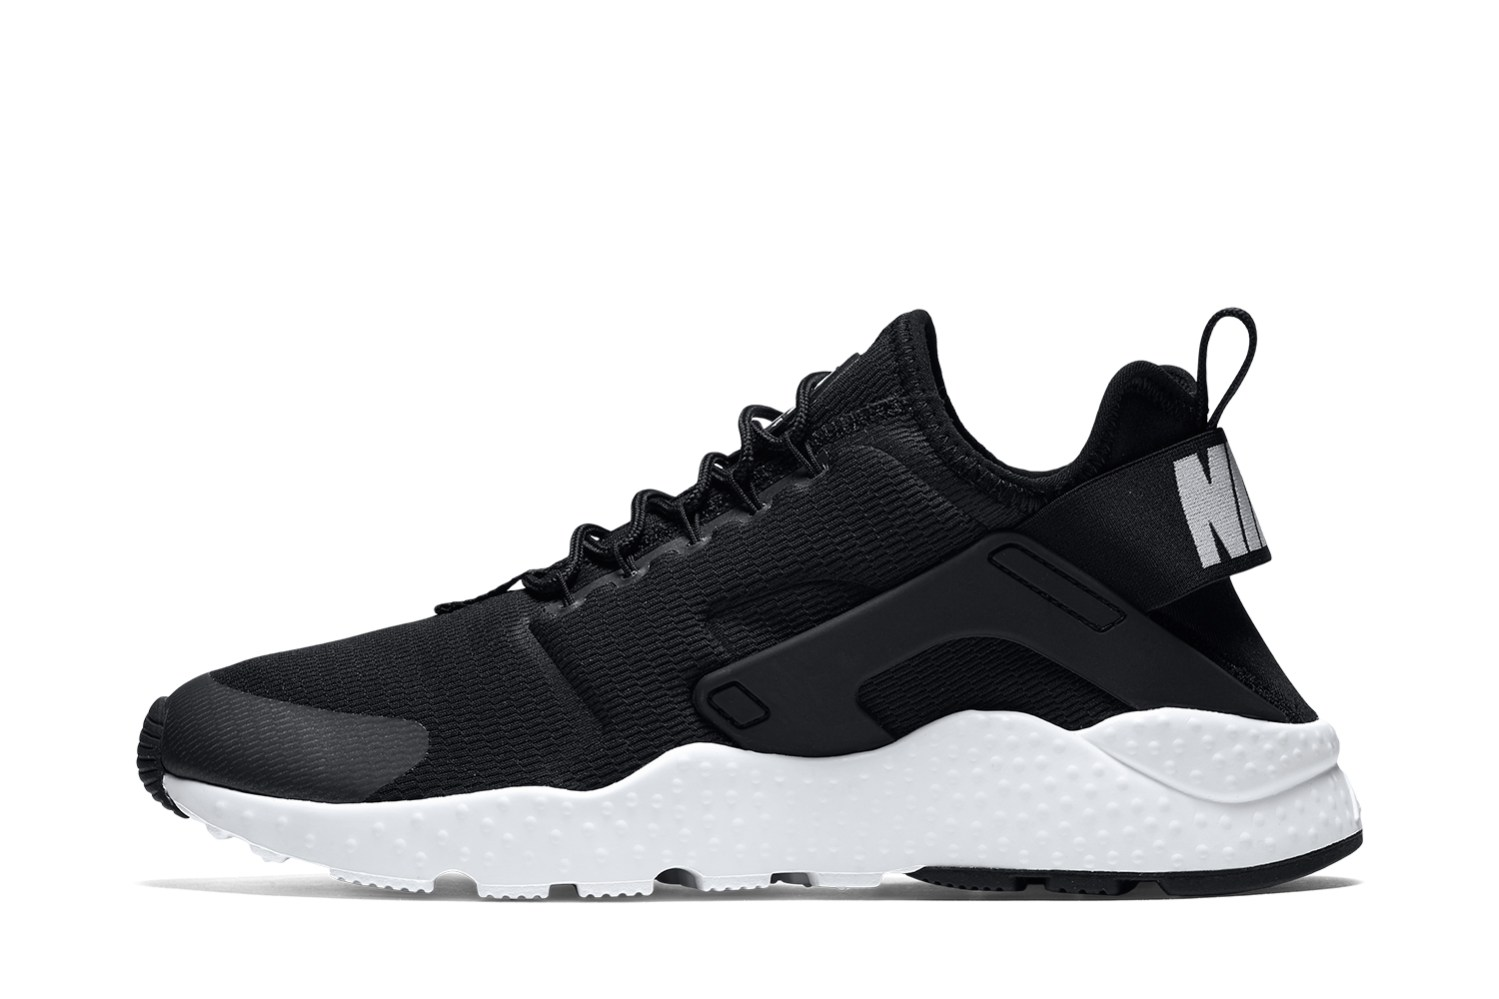 super popular 346a3 bfe19 Nike Air Huarache Ultra